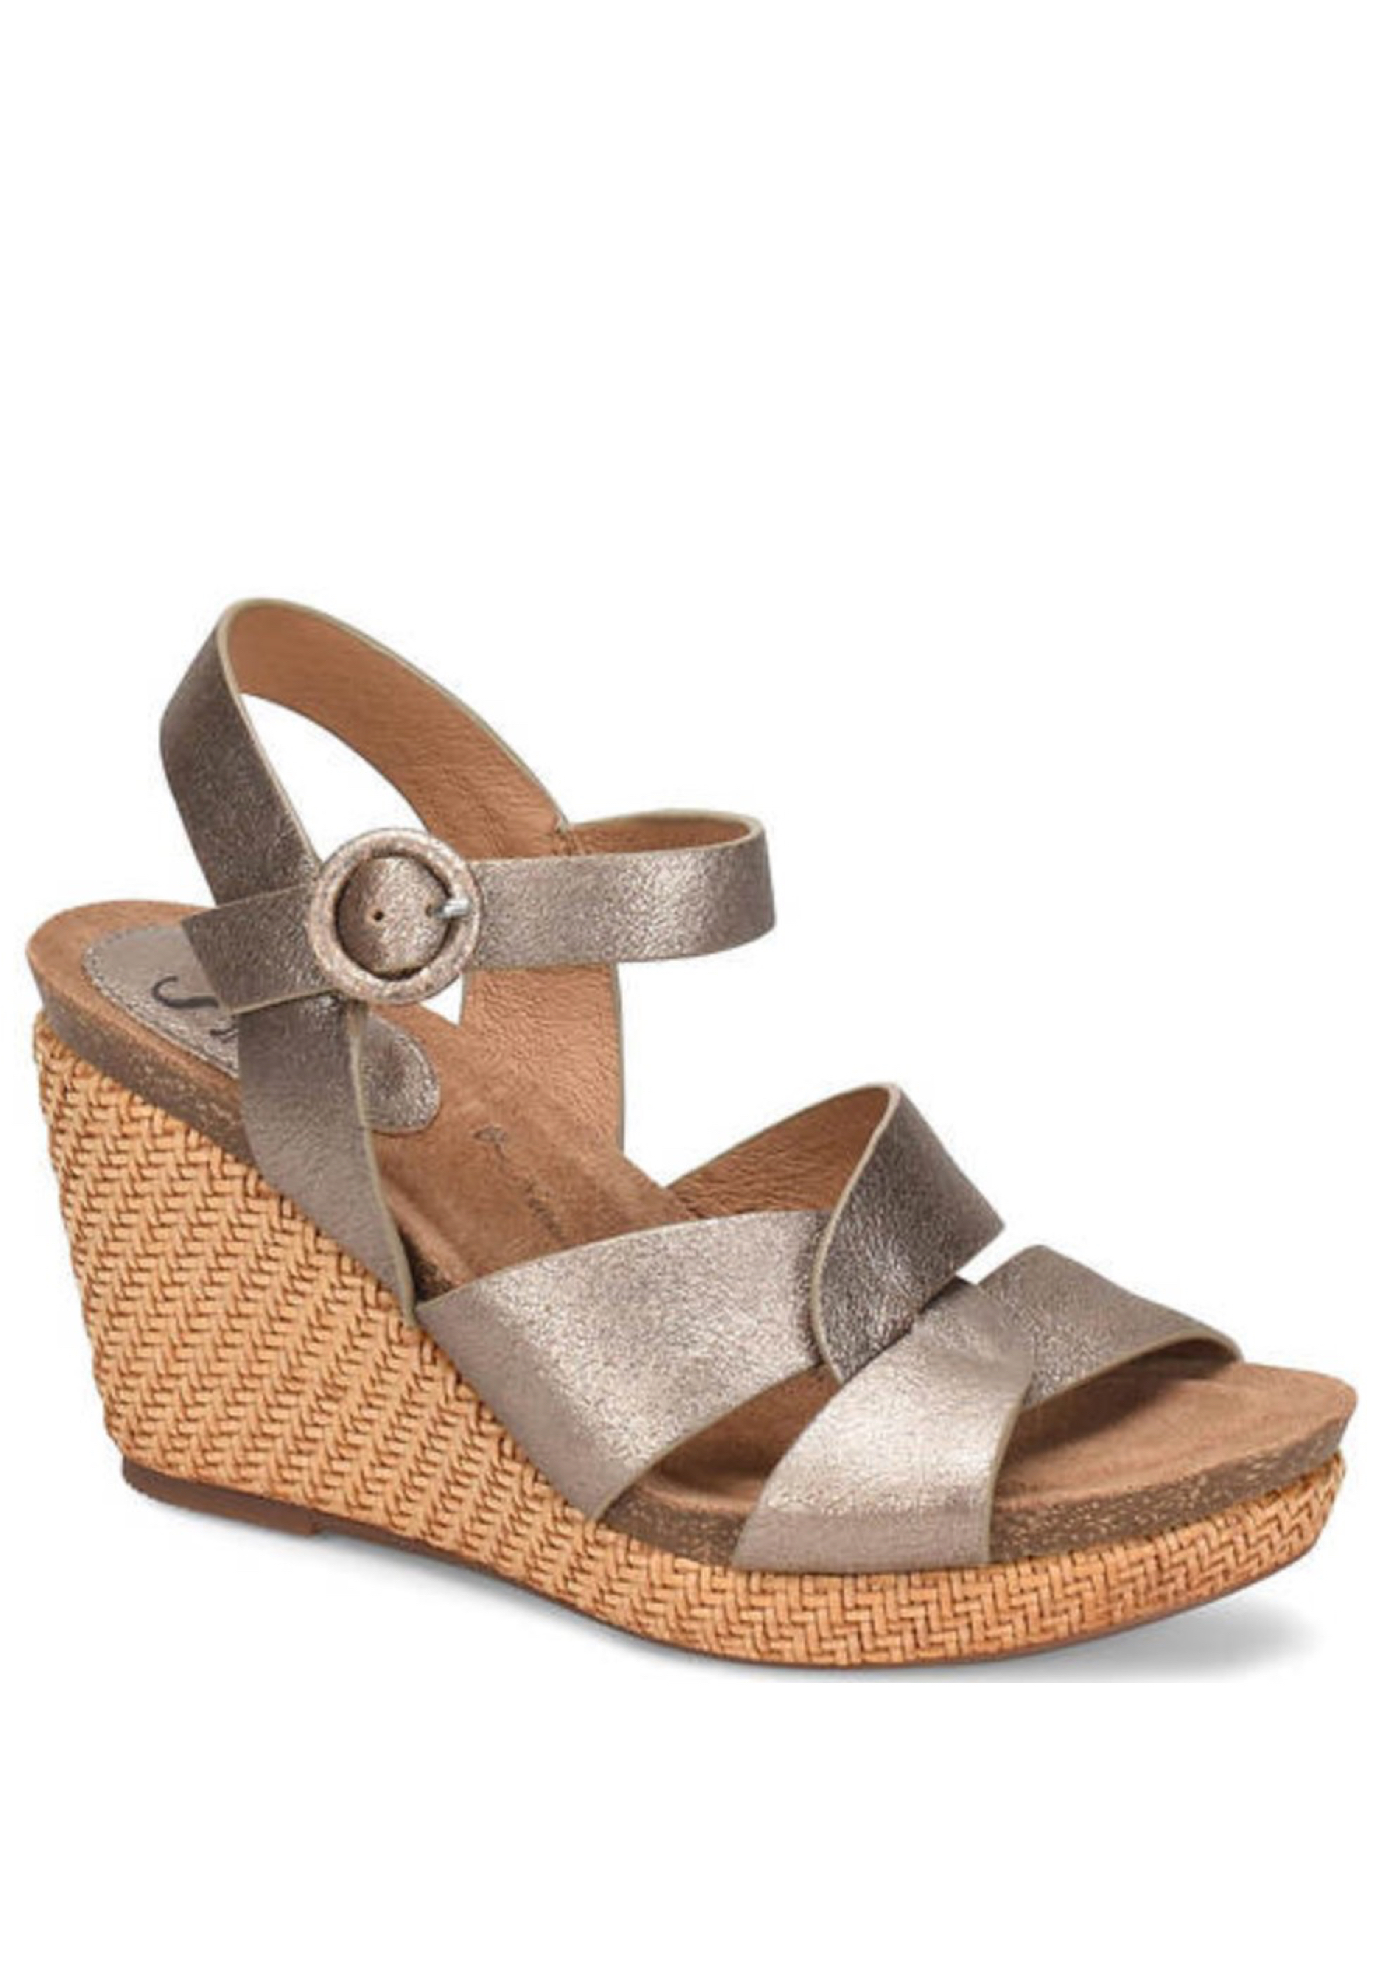 Casidy Sandals,